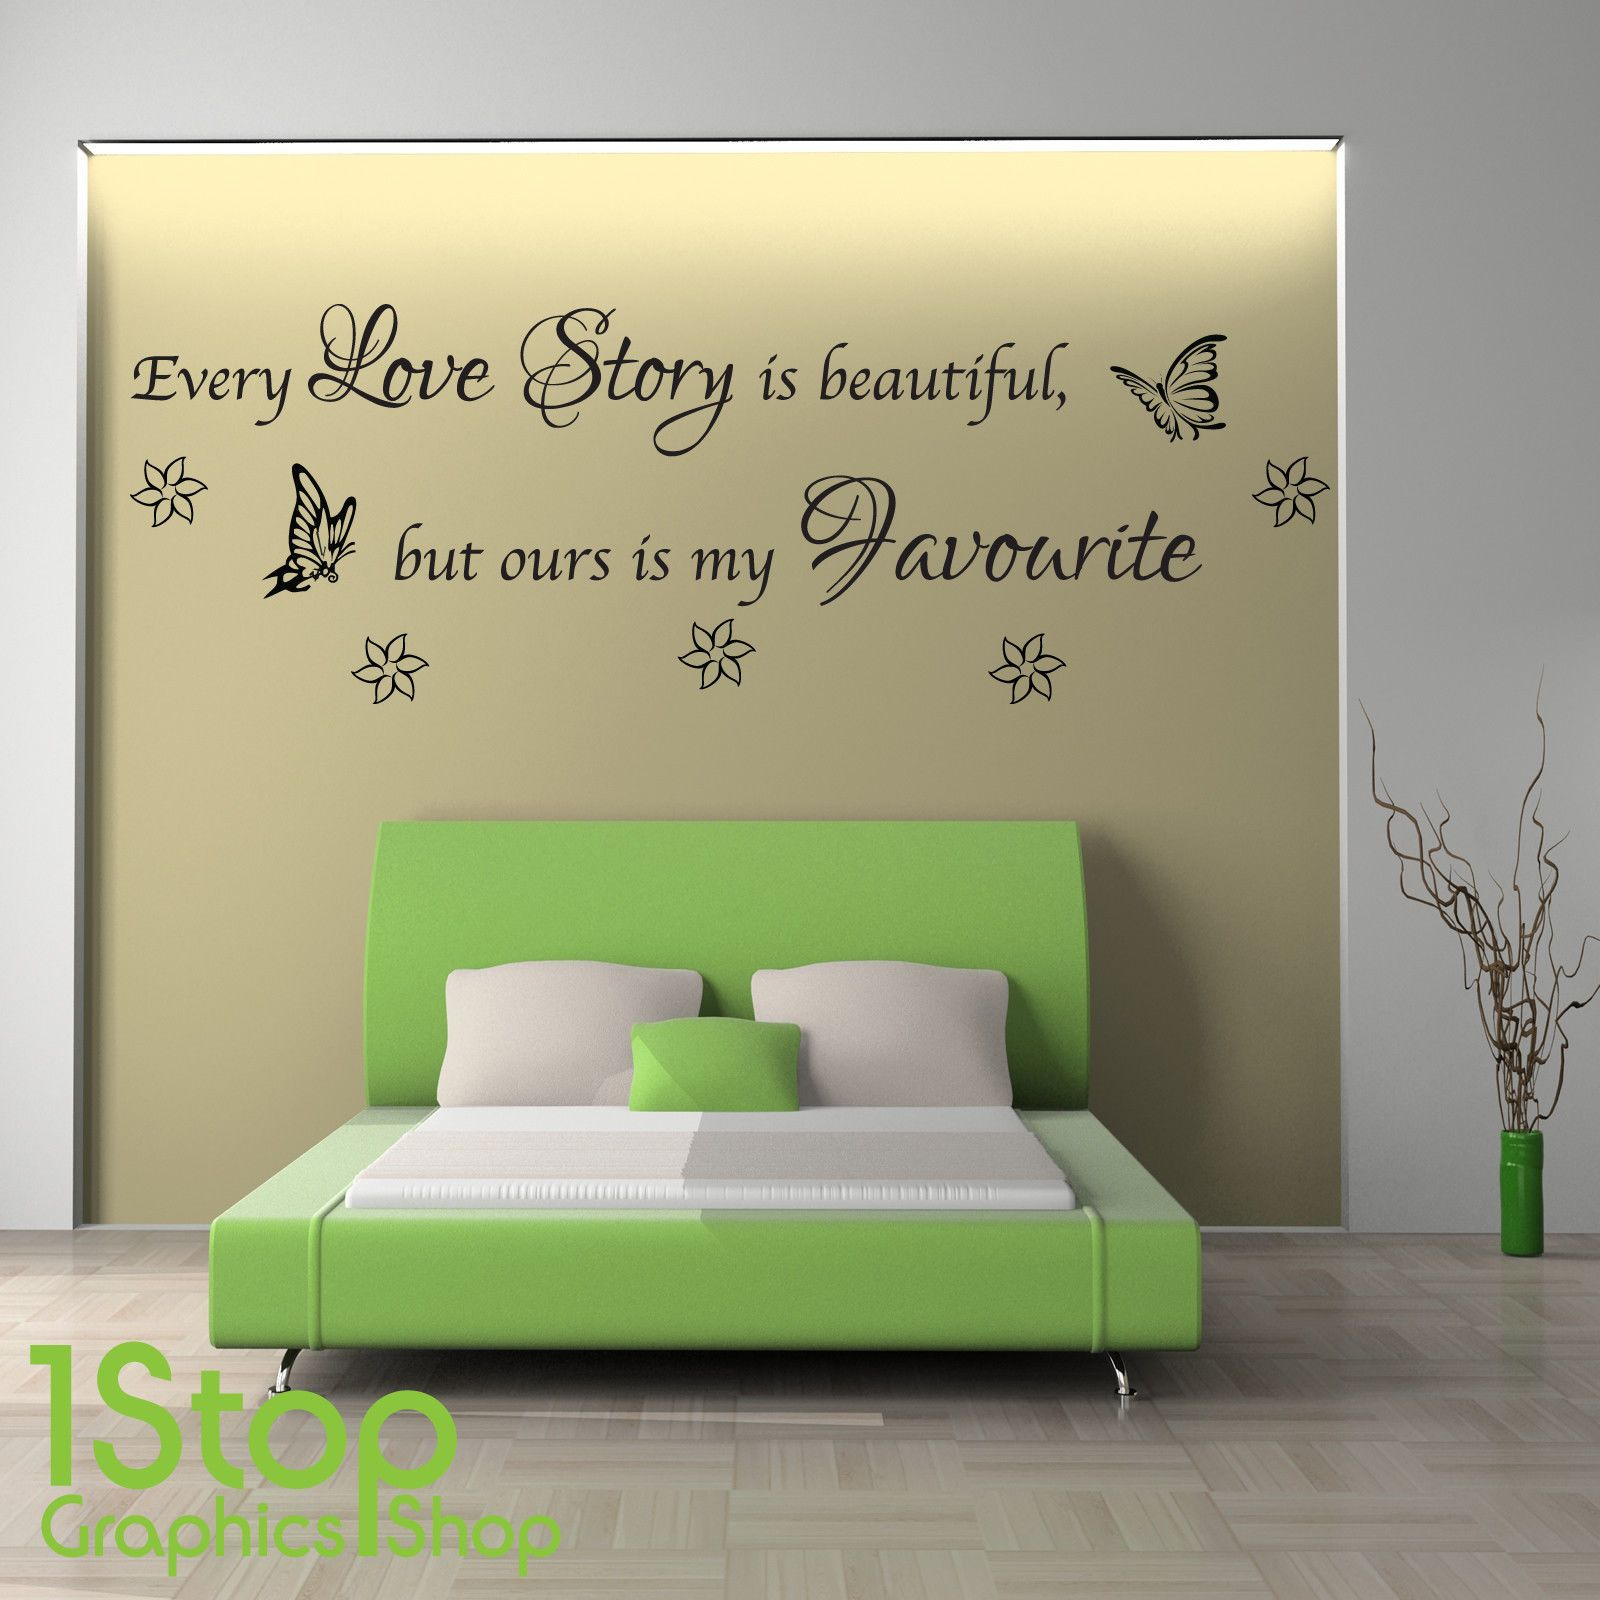 Every love story wall sticker quote bedroom lounge wall art decal